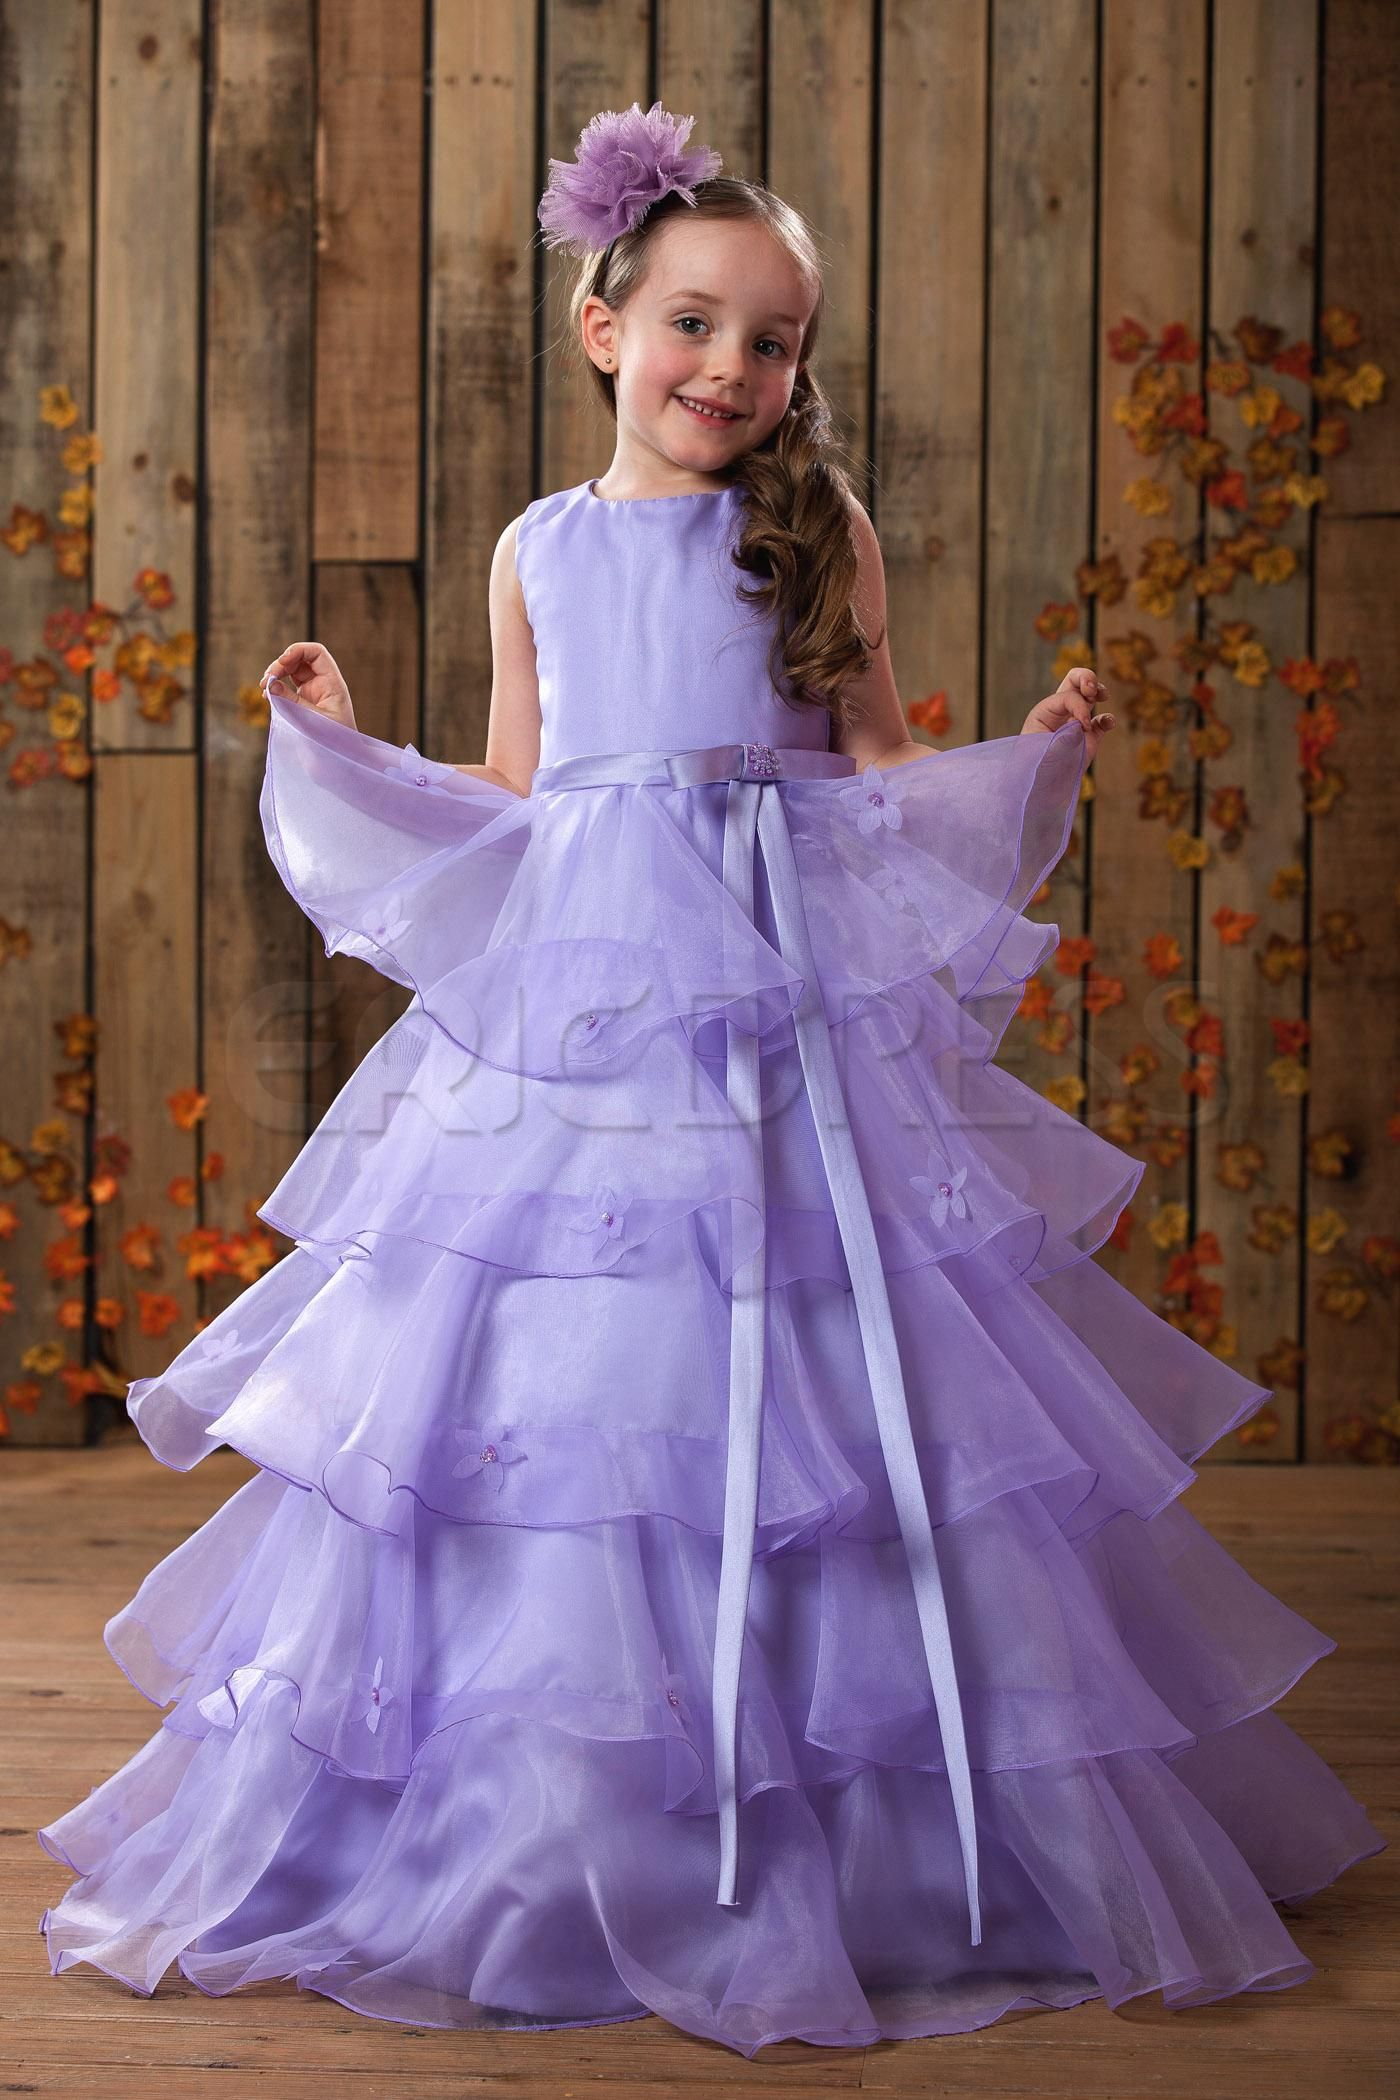 Cute A-Line Scoop Floor-length Tiered Flower Girl Dress | Costura de ...